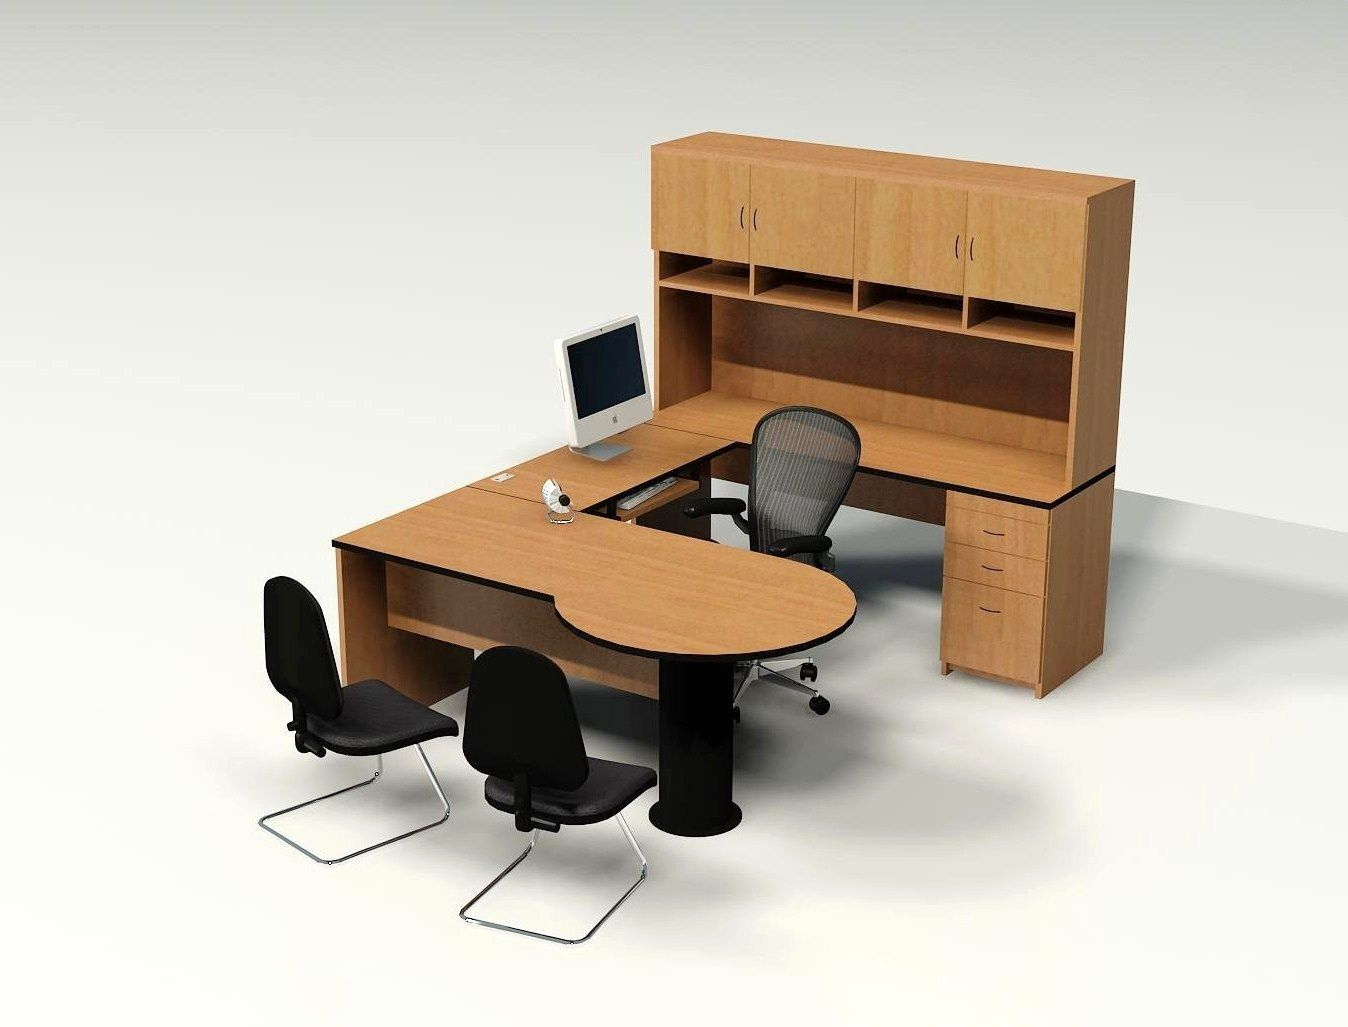 Comfortable And Classy Office Furniture On Office Furniture Decorative Office Furniture Desk Office Furniture Manufacturers Used Office Furniture